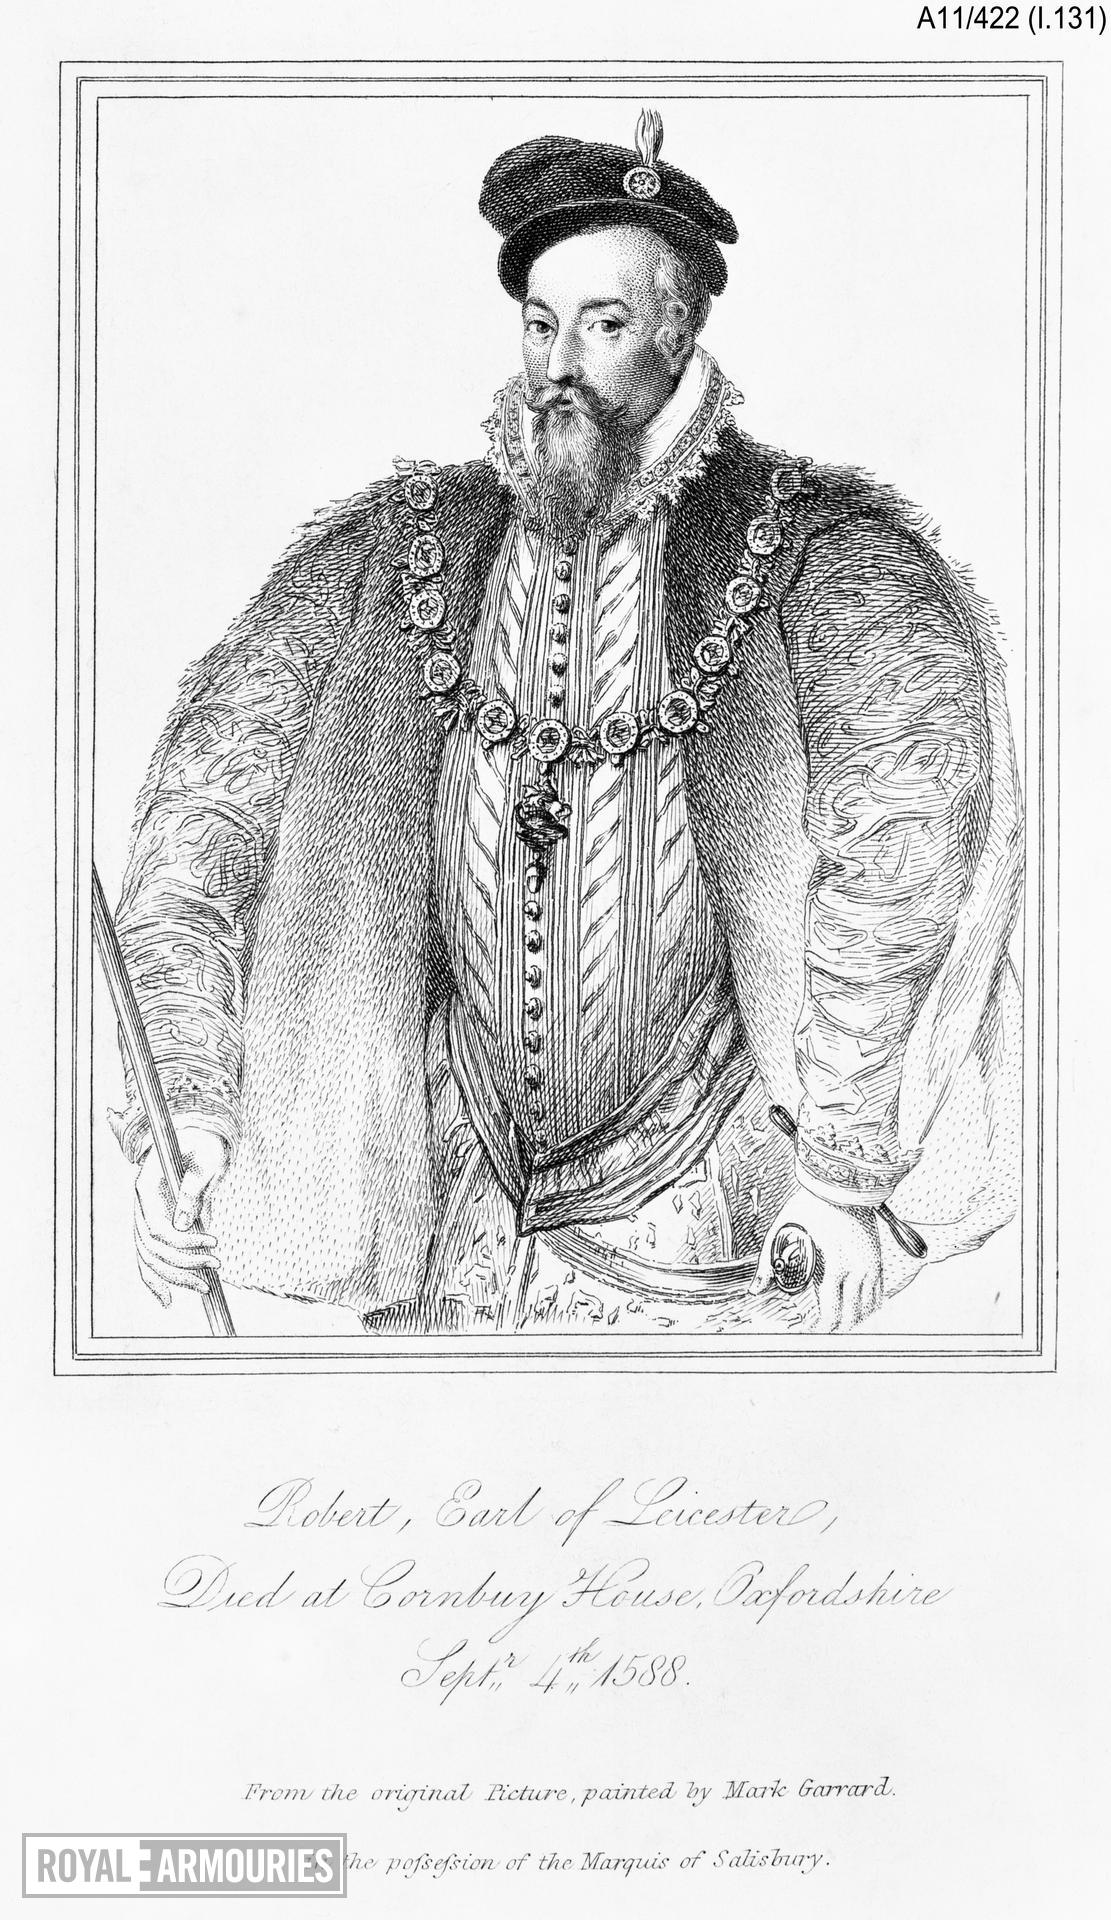 Print Engraved Portrait of Robert Dudley, Earl of Leicester, 1532-1588.